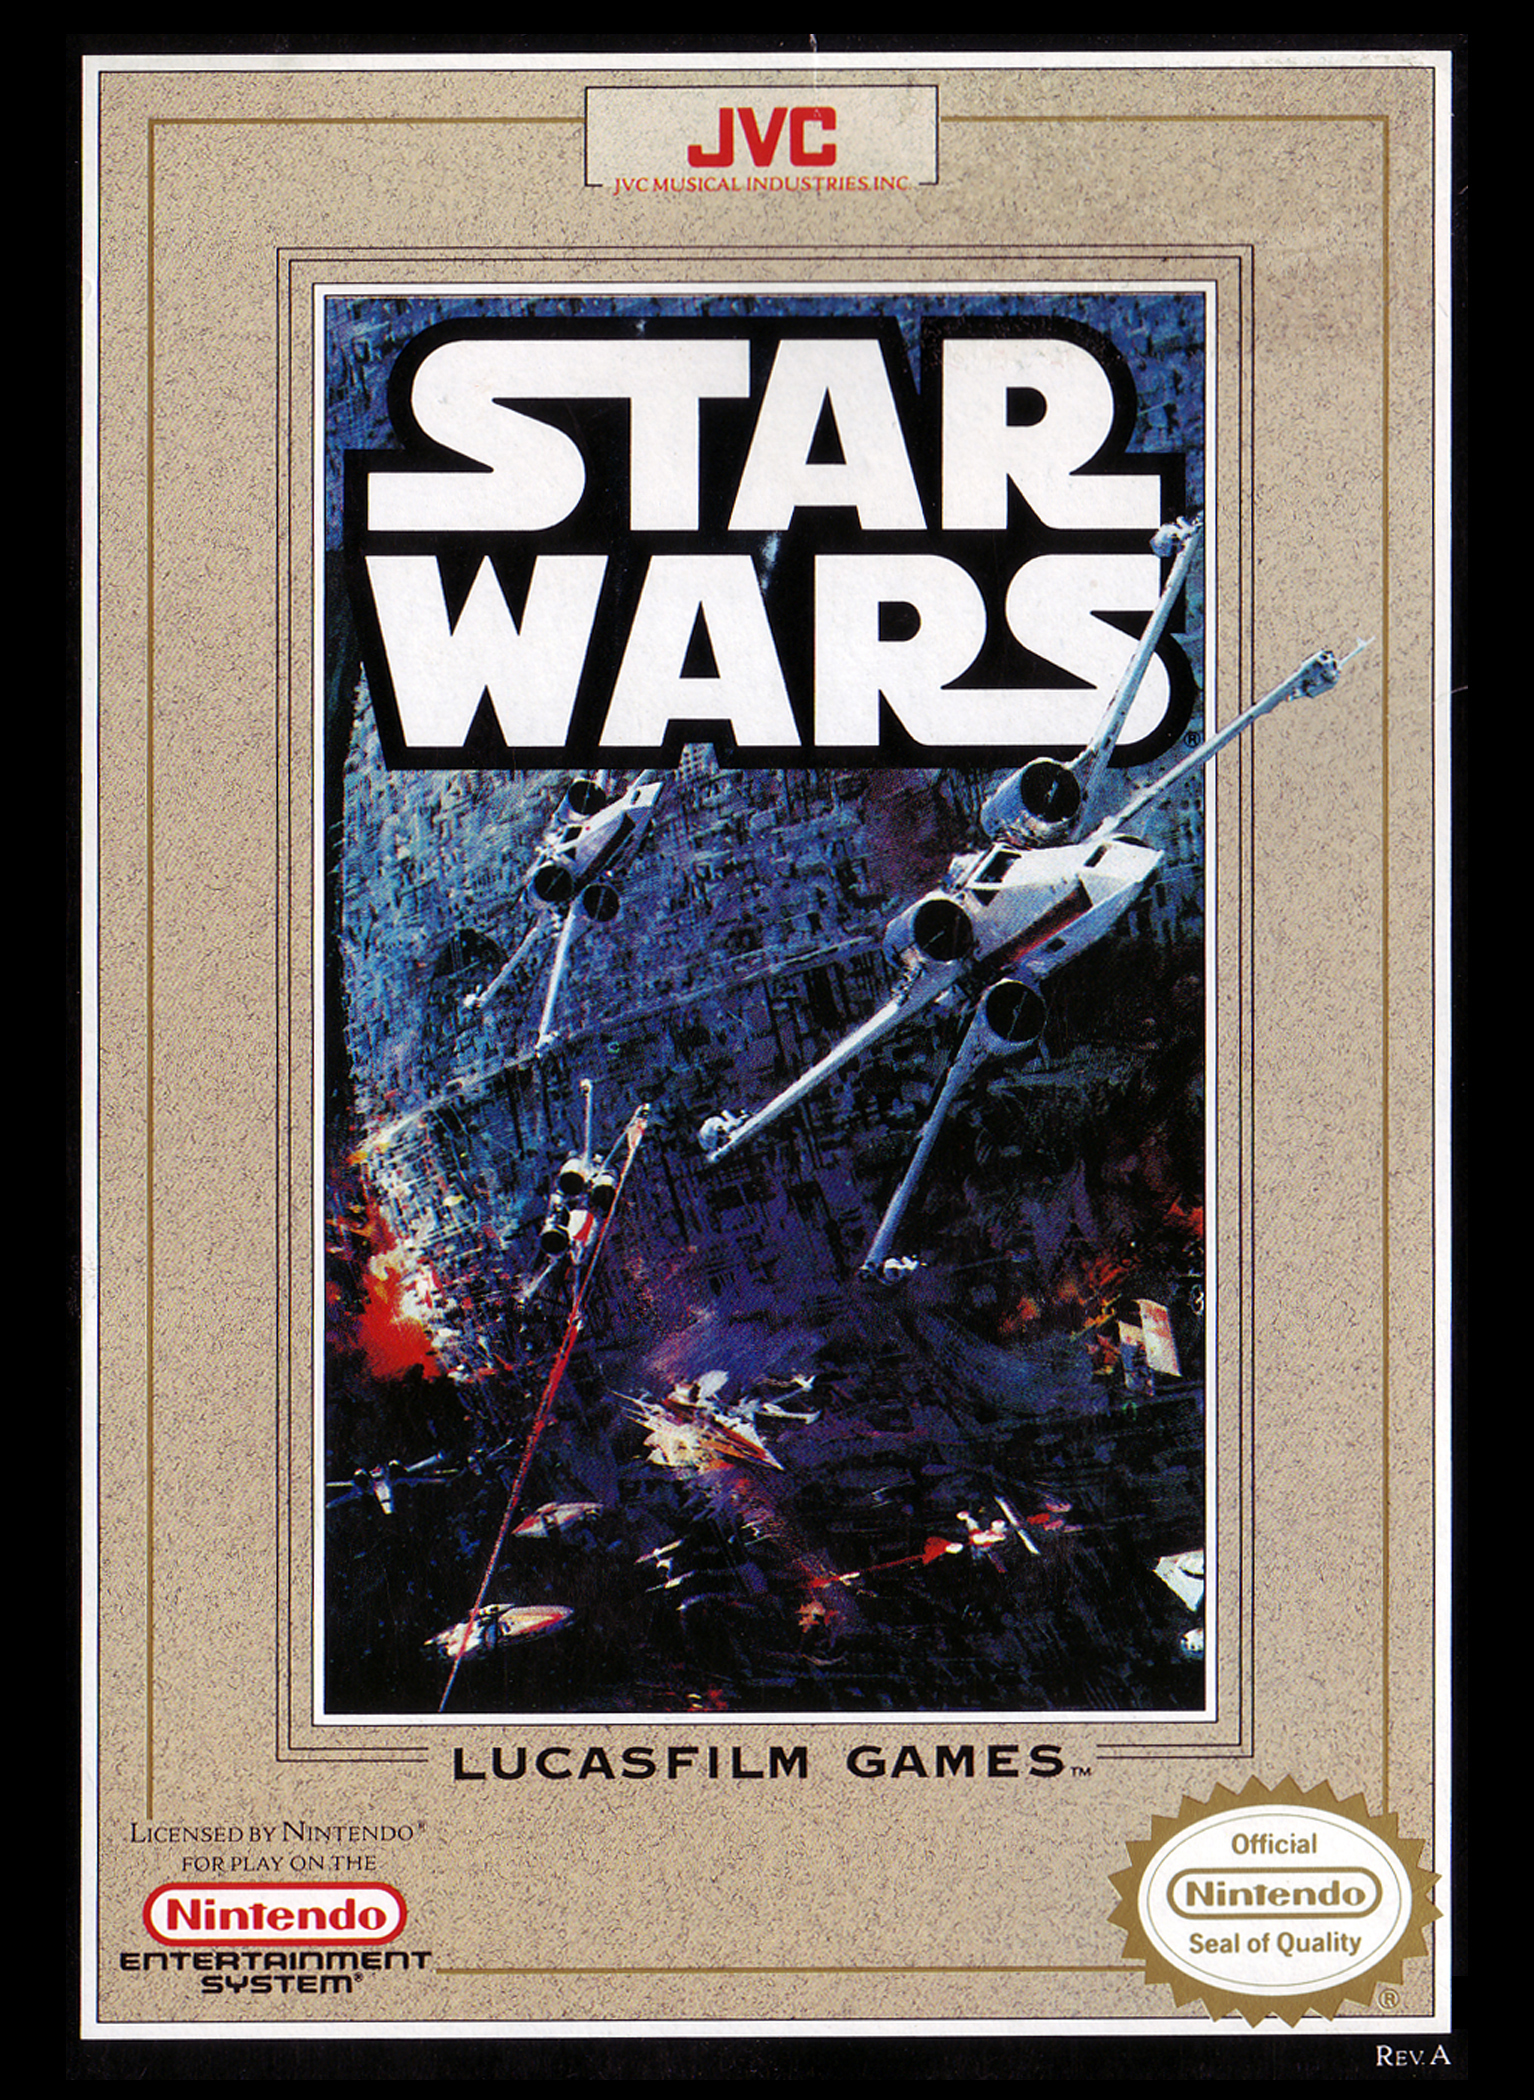 star wars nes The Best and Worst Star Wars Video Games